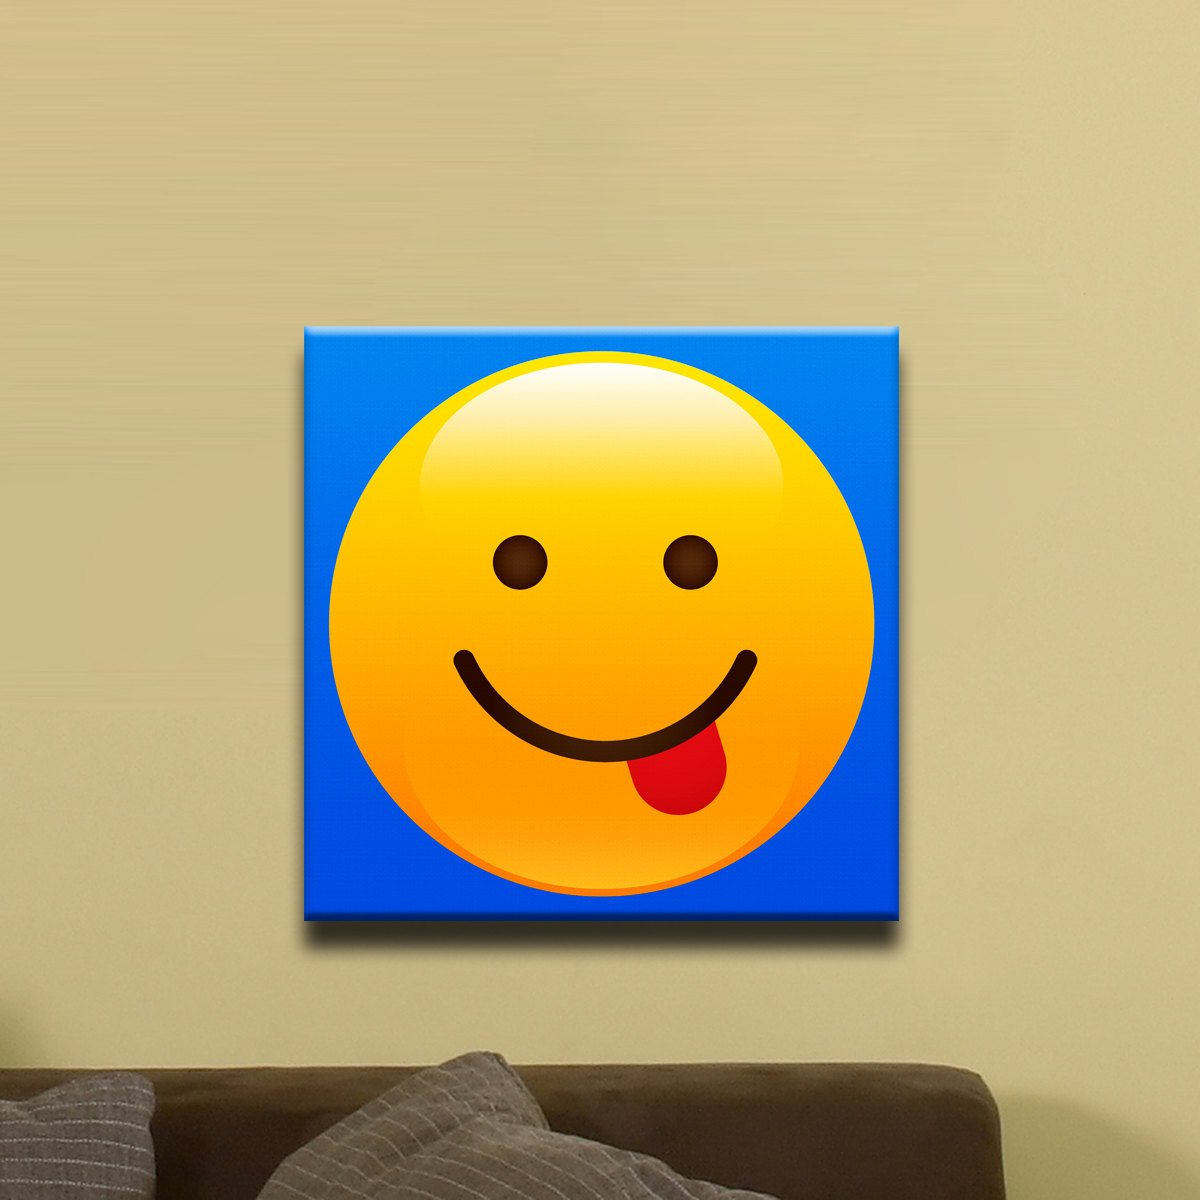 Tongue Sticking Out Shiny Emoji (12″ x 12″) – Canvas Wrap Print